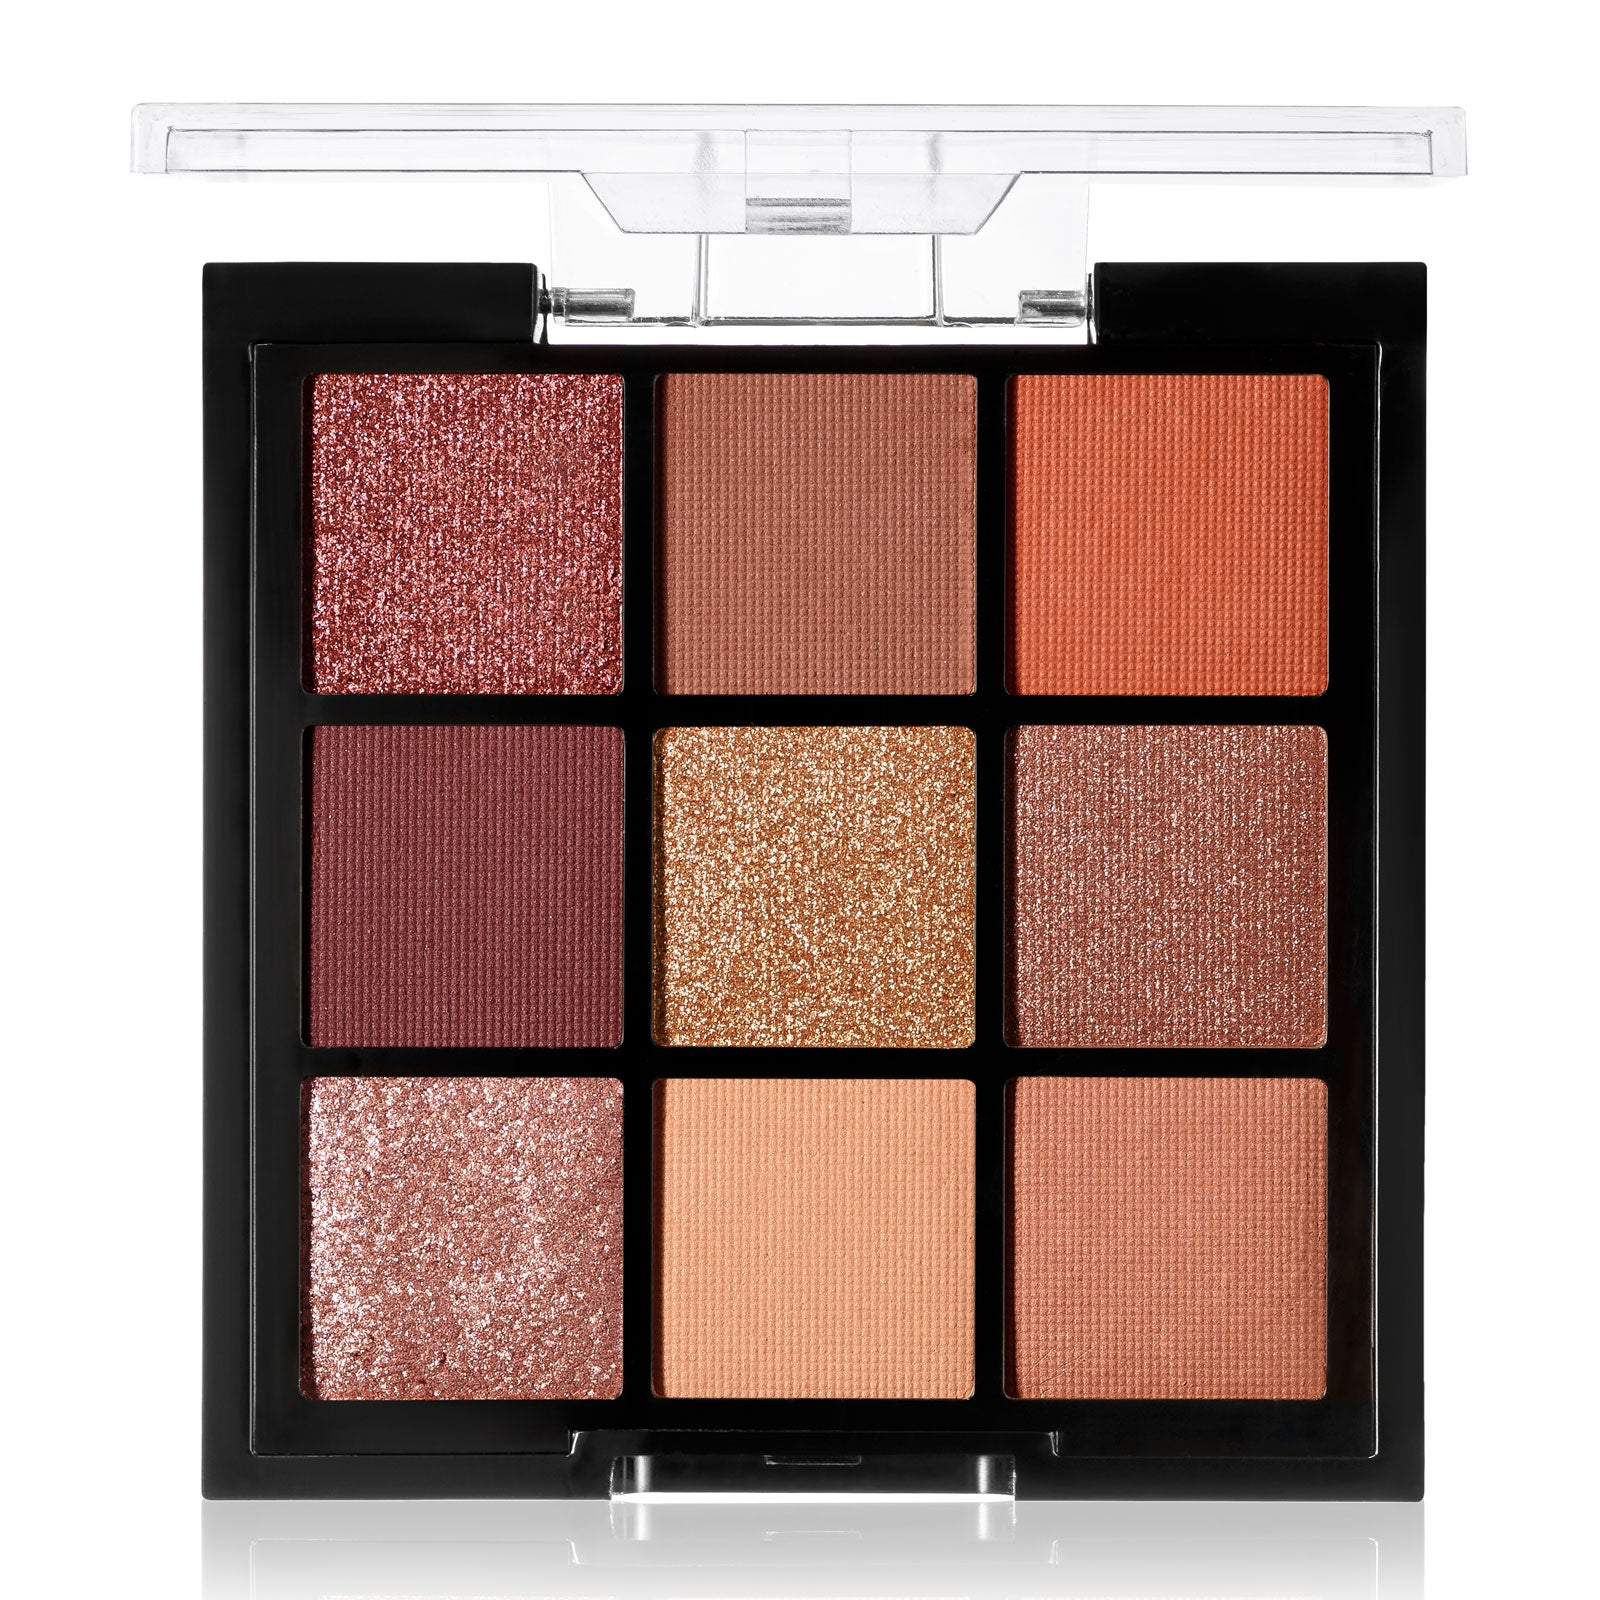 Lottie London EyeShadow Palette The Rusts 7.2g